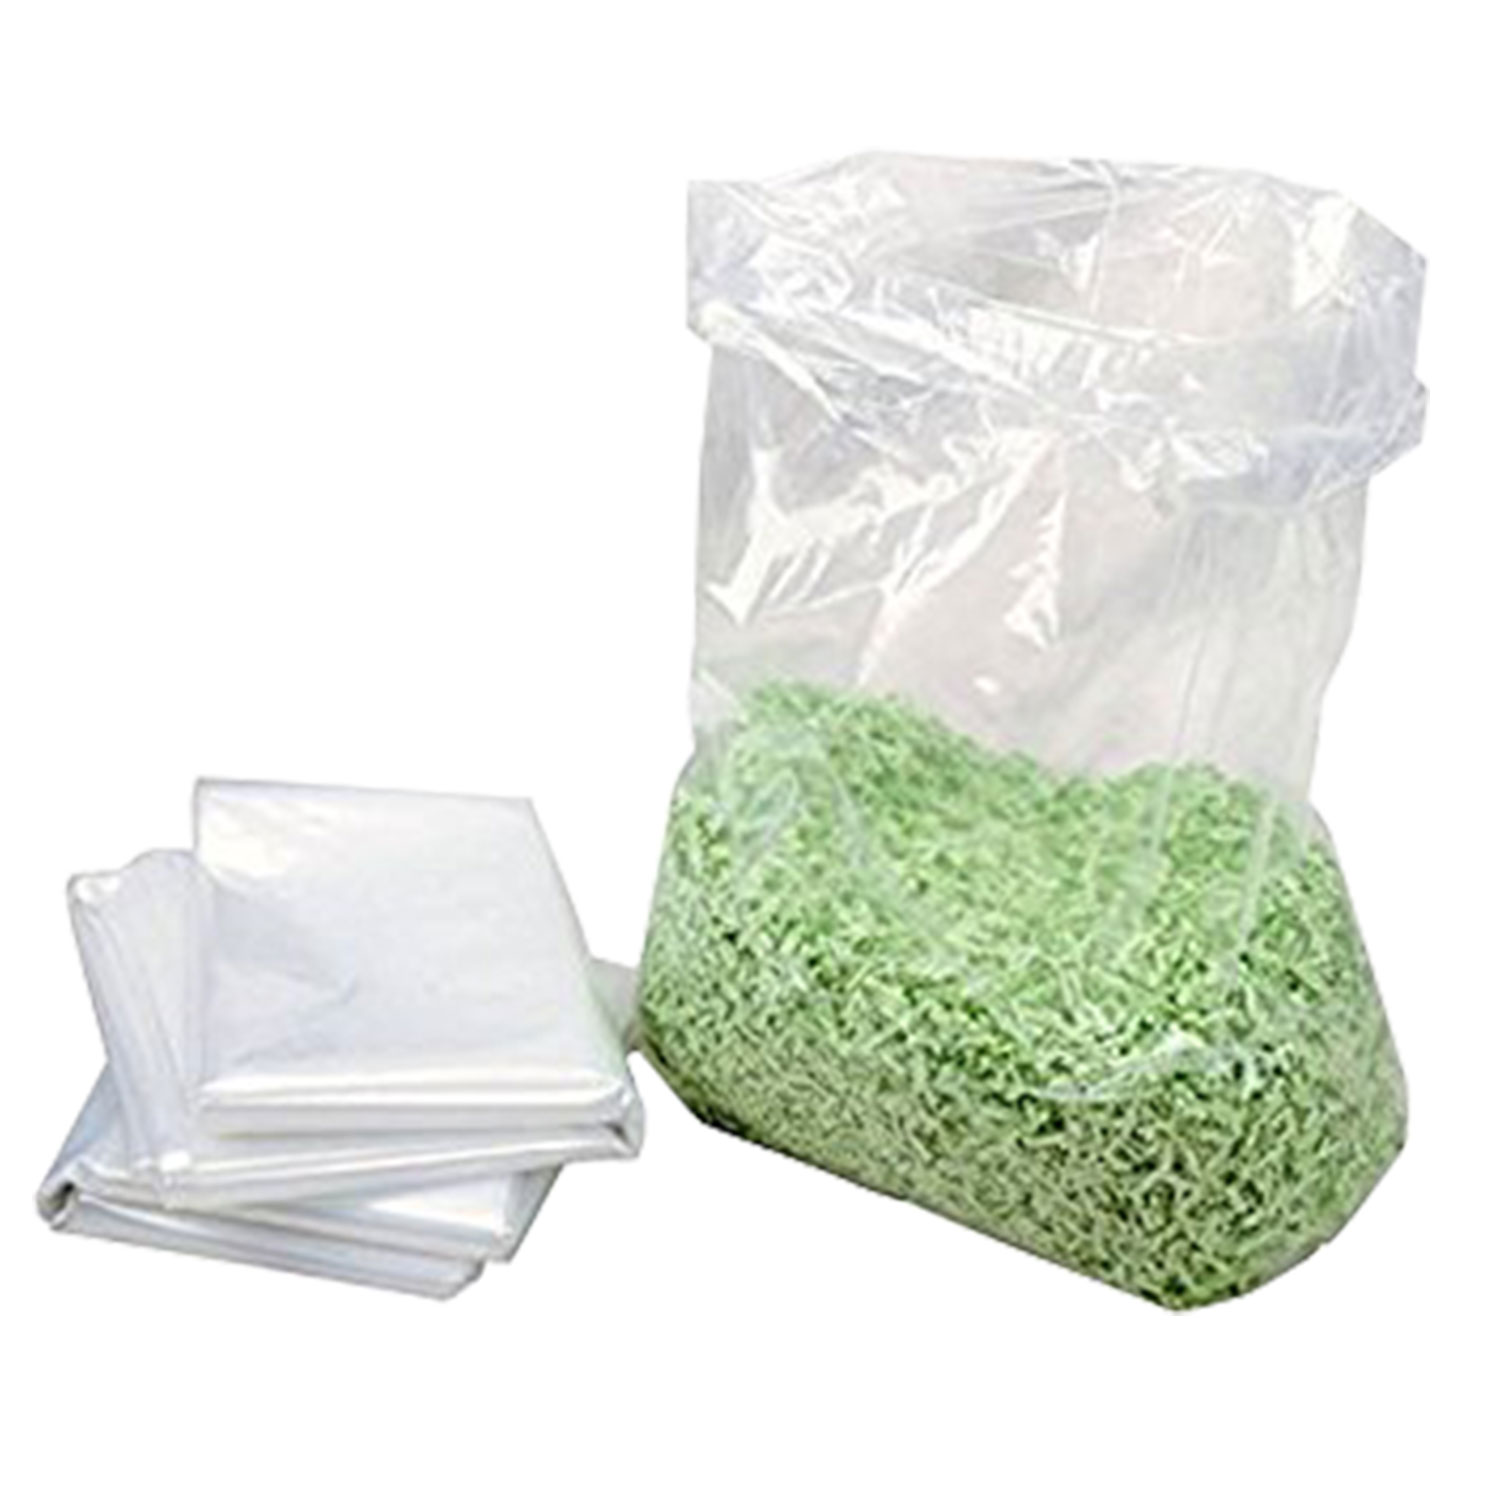 IDEAL Shredder Bags For IDEAL 5009, 5008, 4105, 4106, 6006 Shred